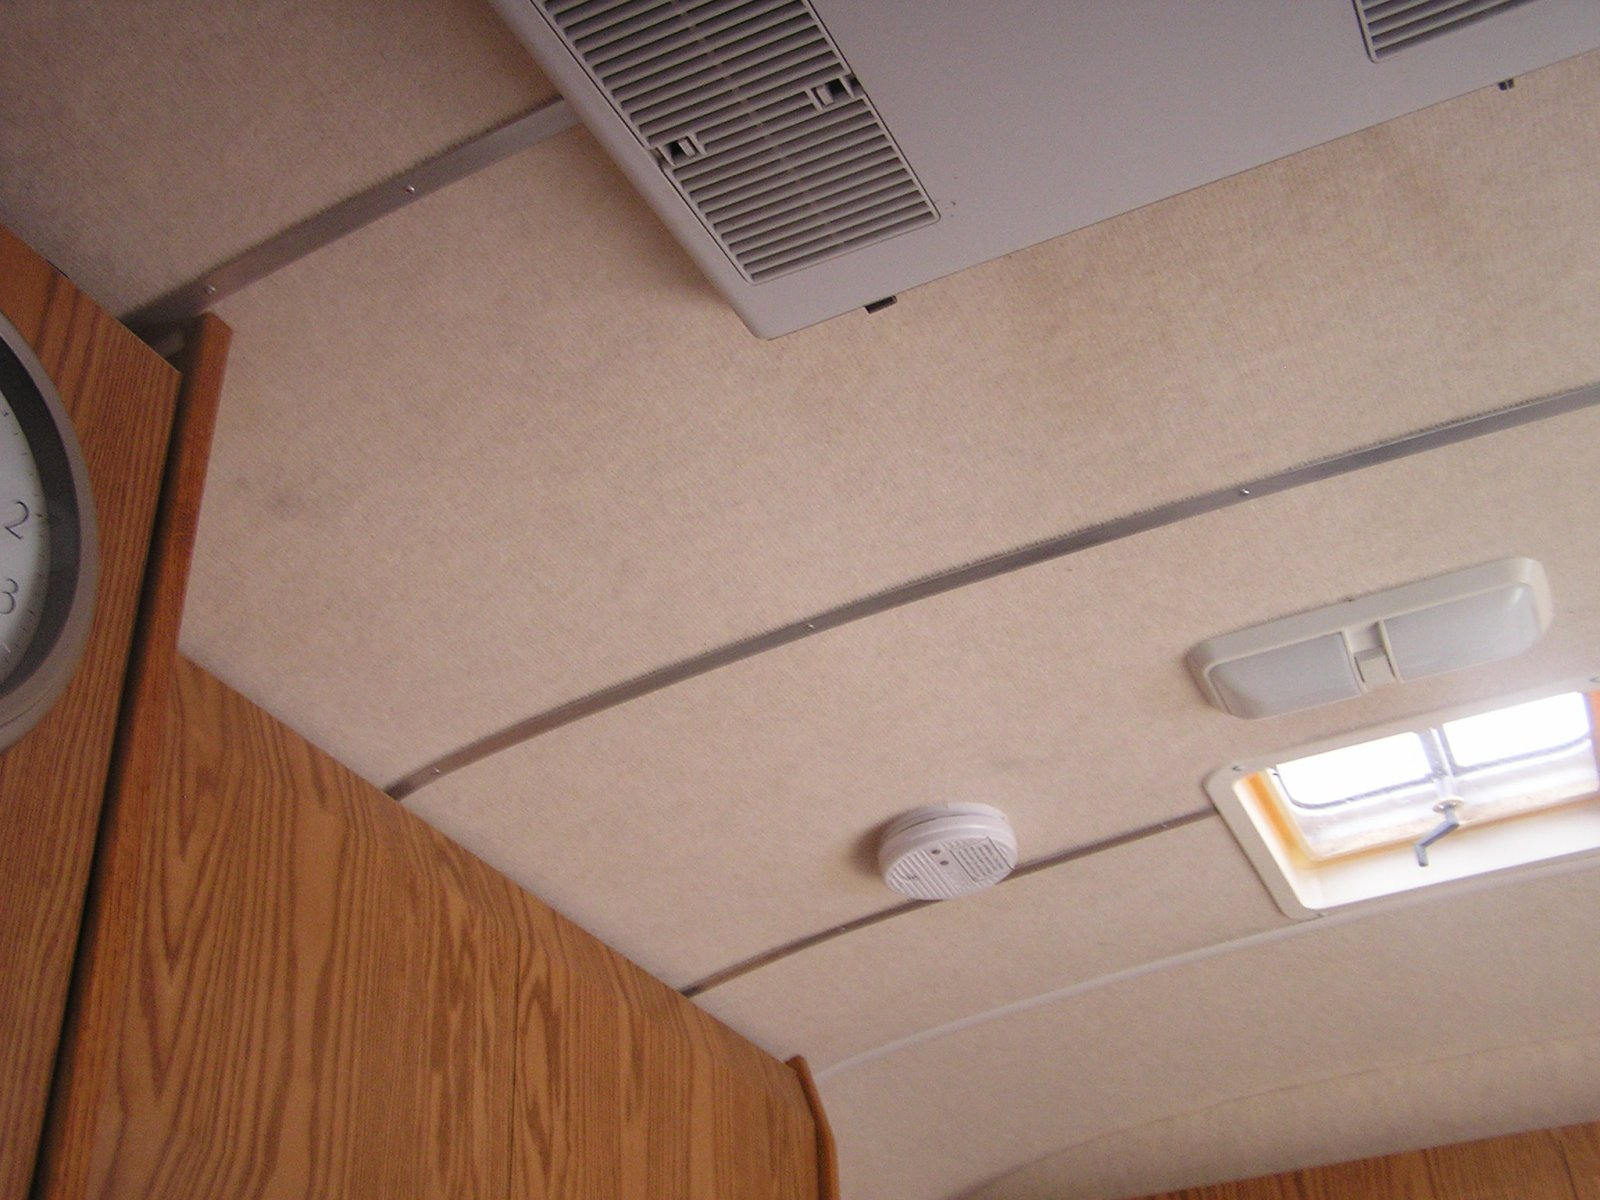 Click image for larger version  Name:ceiling.jpg Views:203 Size:260.3 KB ID:182207